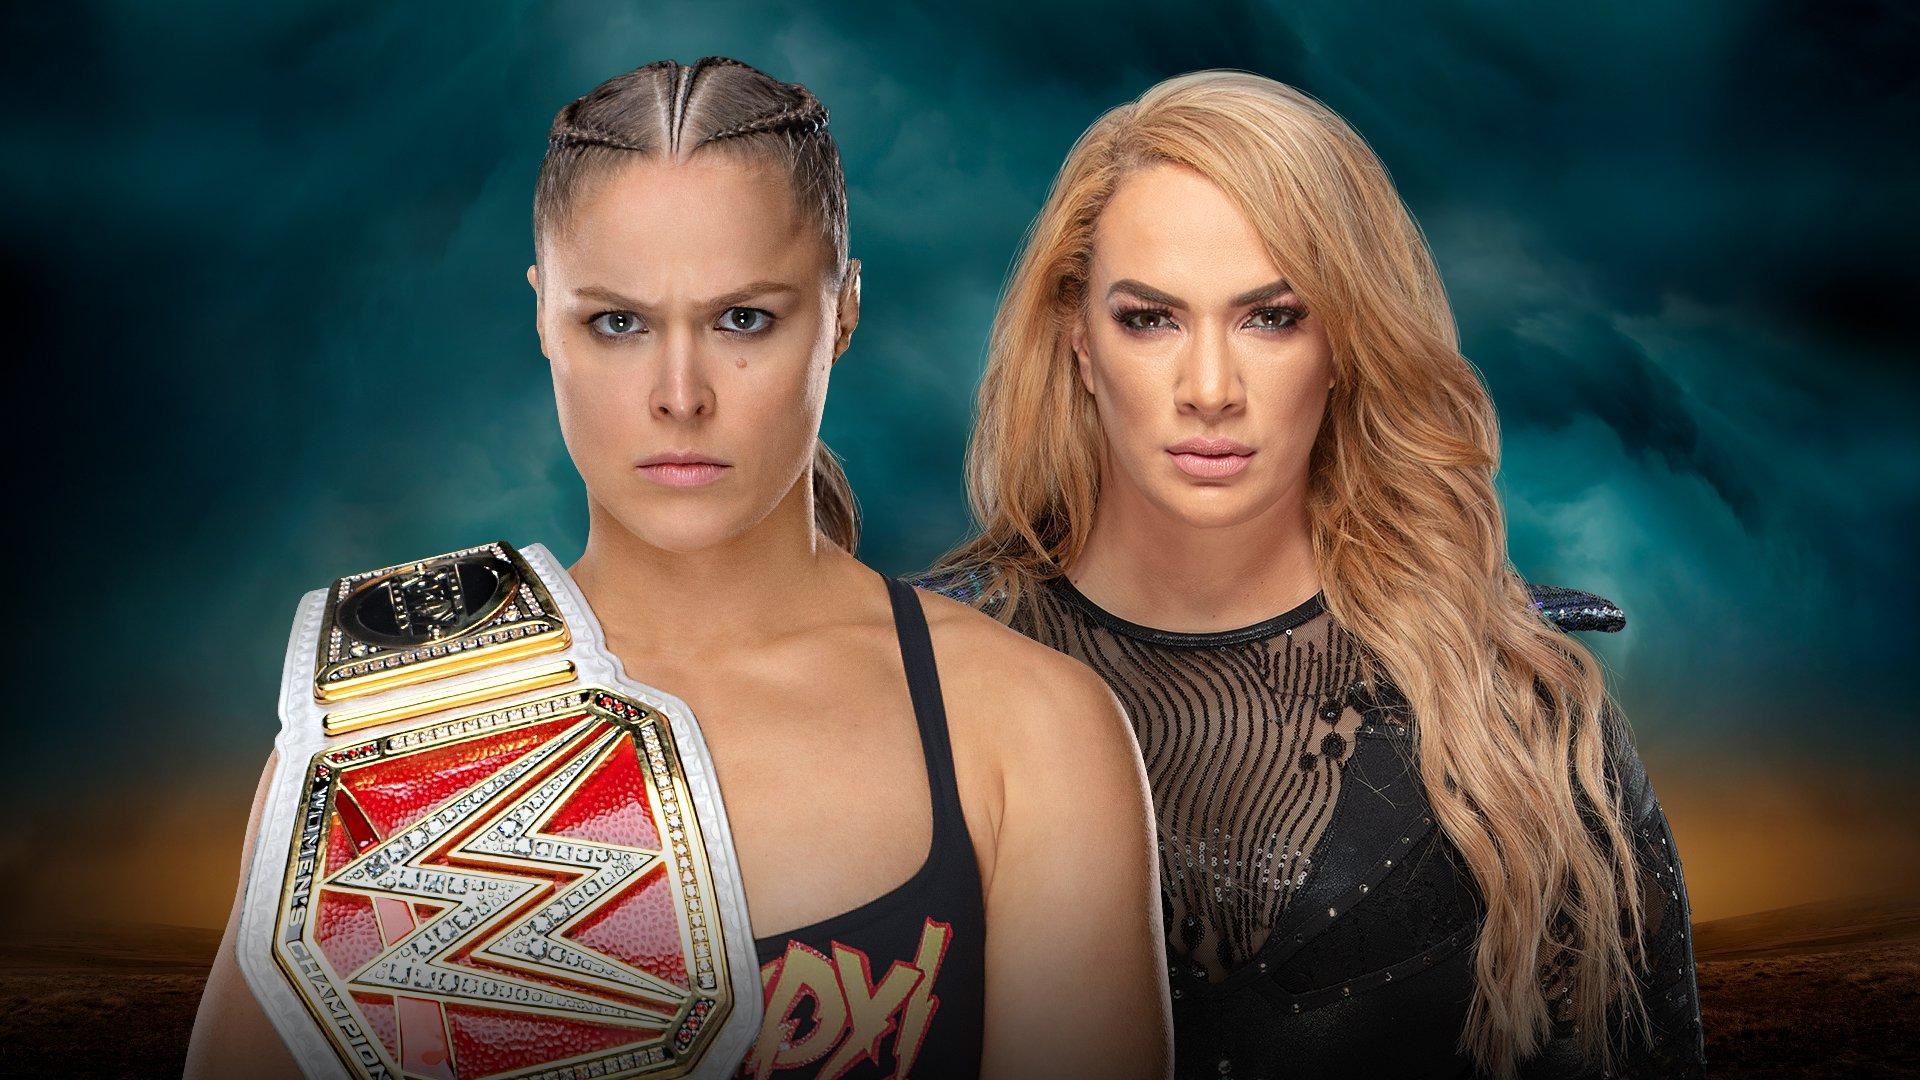 Raw Women's Champion Ronda Rousey vs Nia Jax